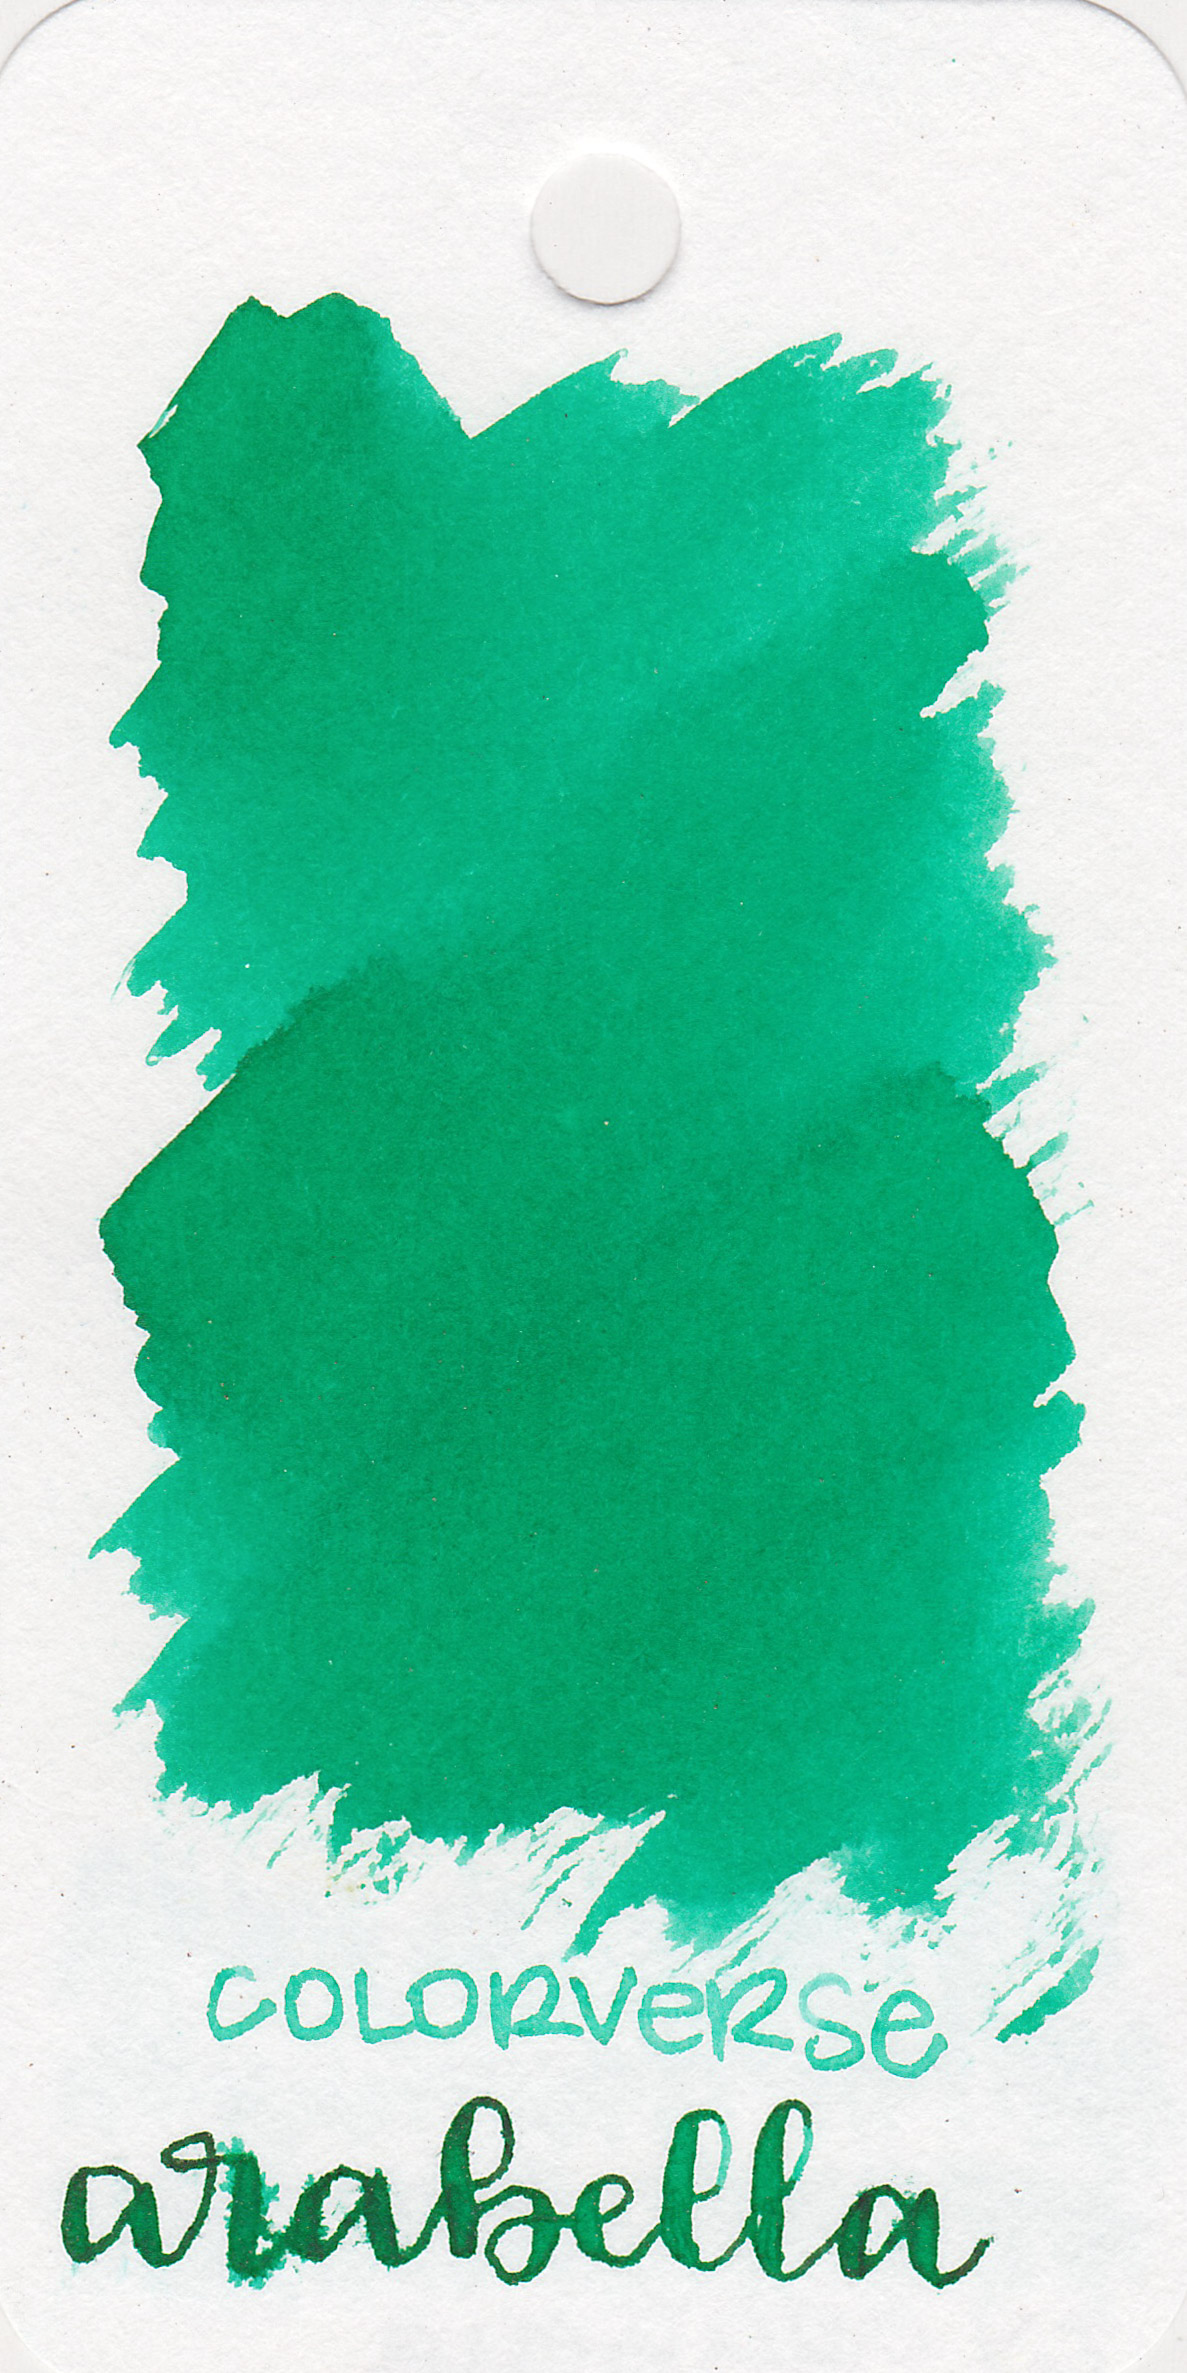 The color: - Arabella is a medium vivid green.